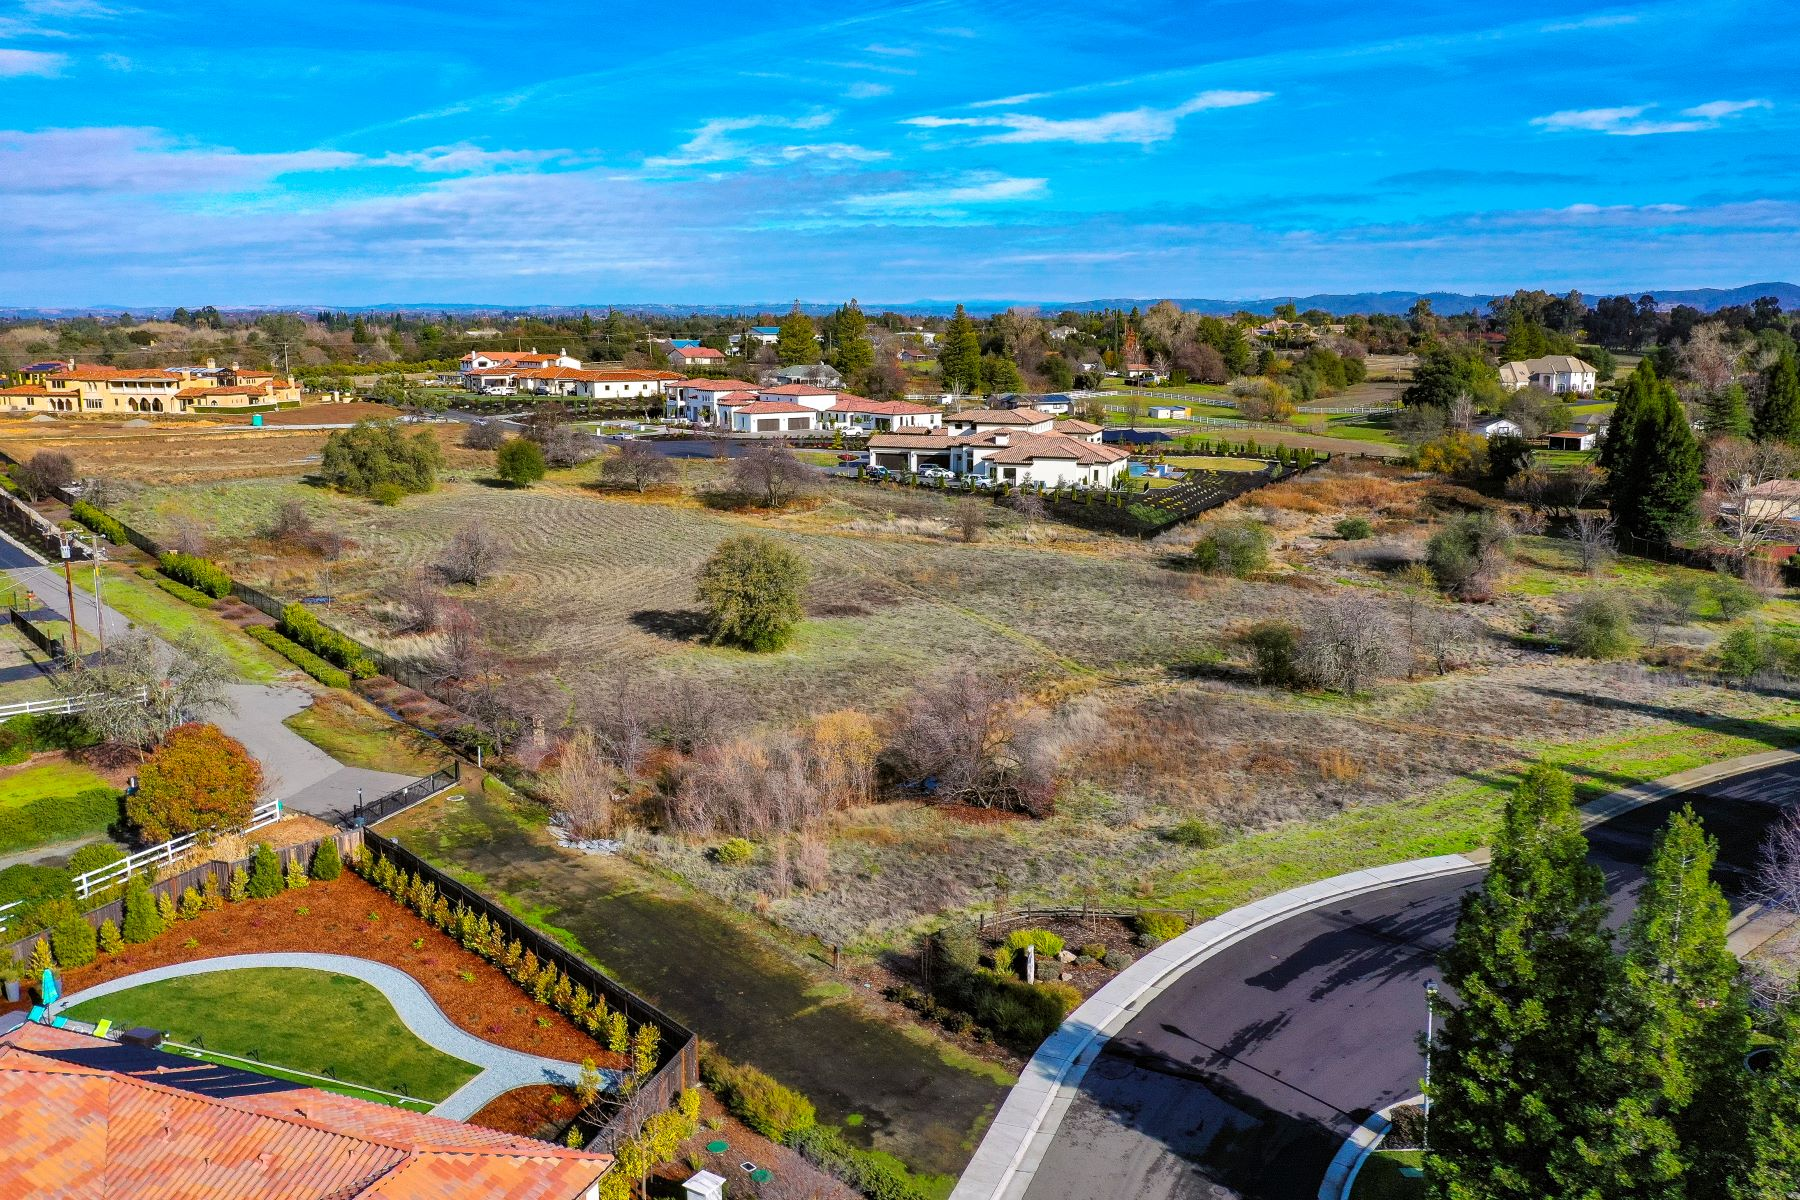 Terreno por un Venta en 9070 Chelshire Estates Court, Granite Bay, CA 95746 9070 Chelshire Estates Court Granite Bay, California 95746 Estados Unidos